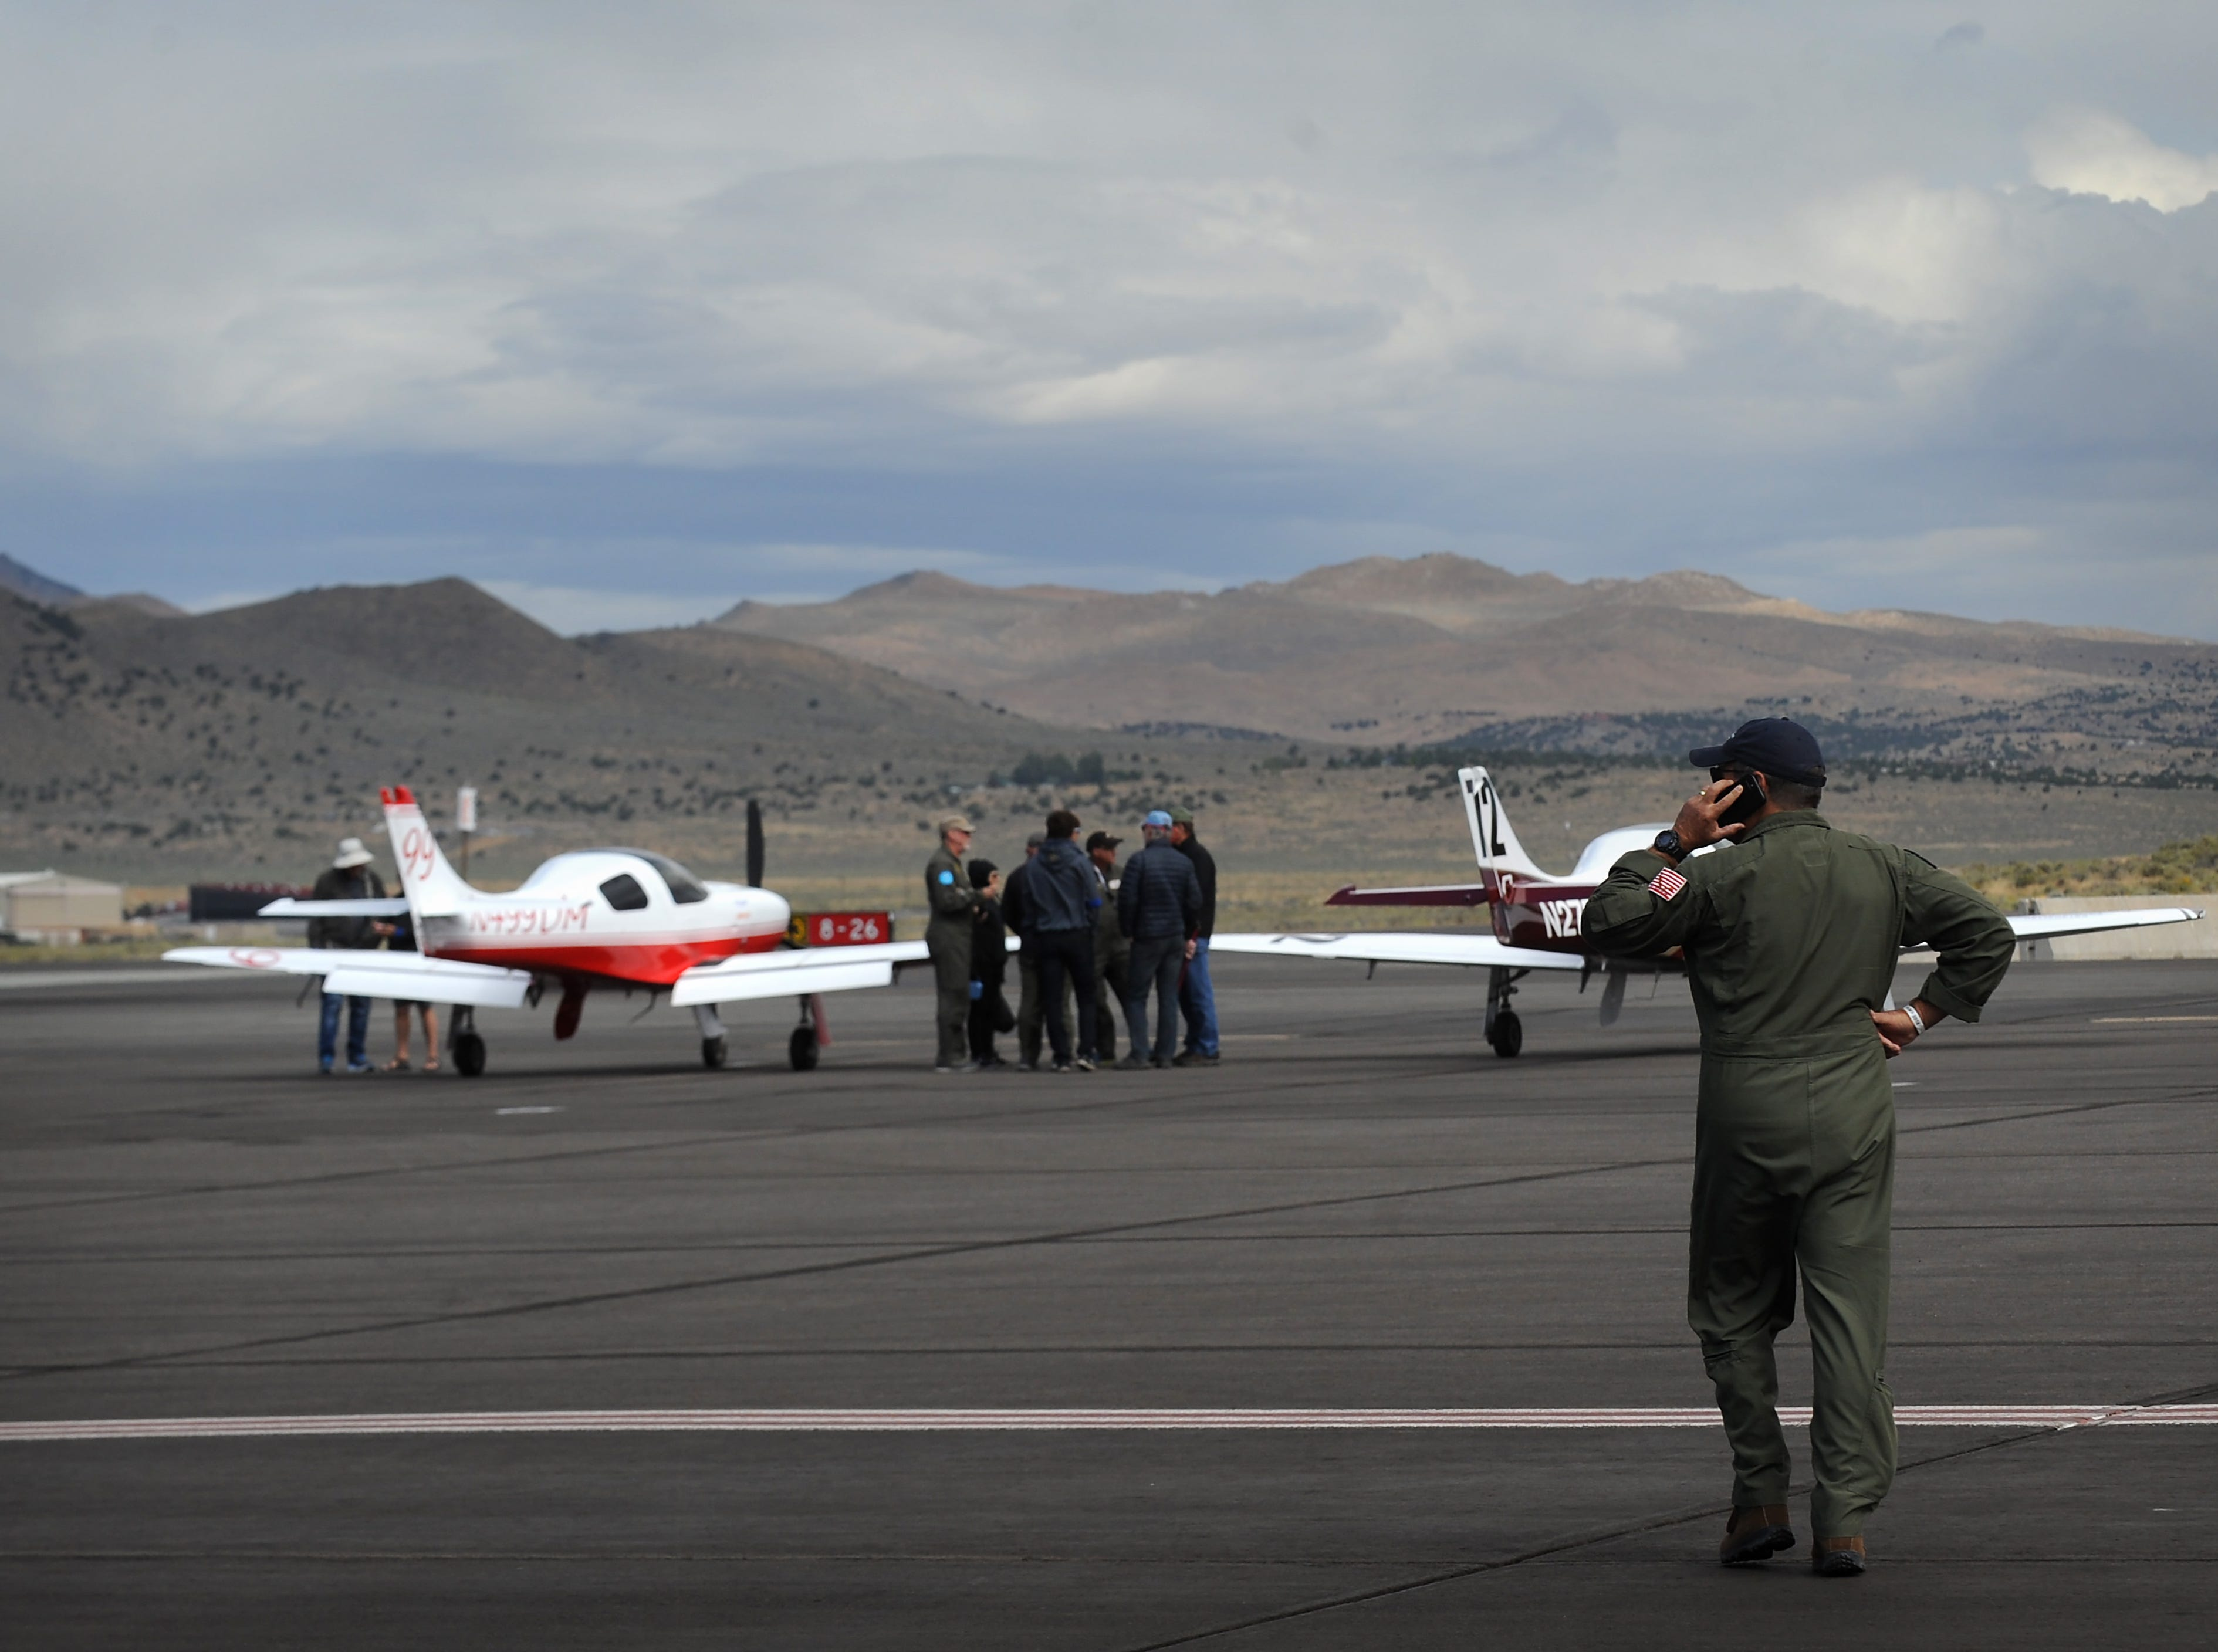 The racing is put on hold due to strong cross winds at the STIHL National Championship Air Races at Stead Airport north of Reno on Sept. 15, 2018.